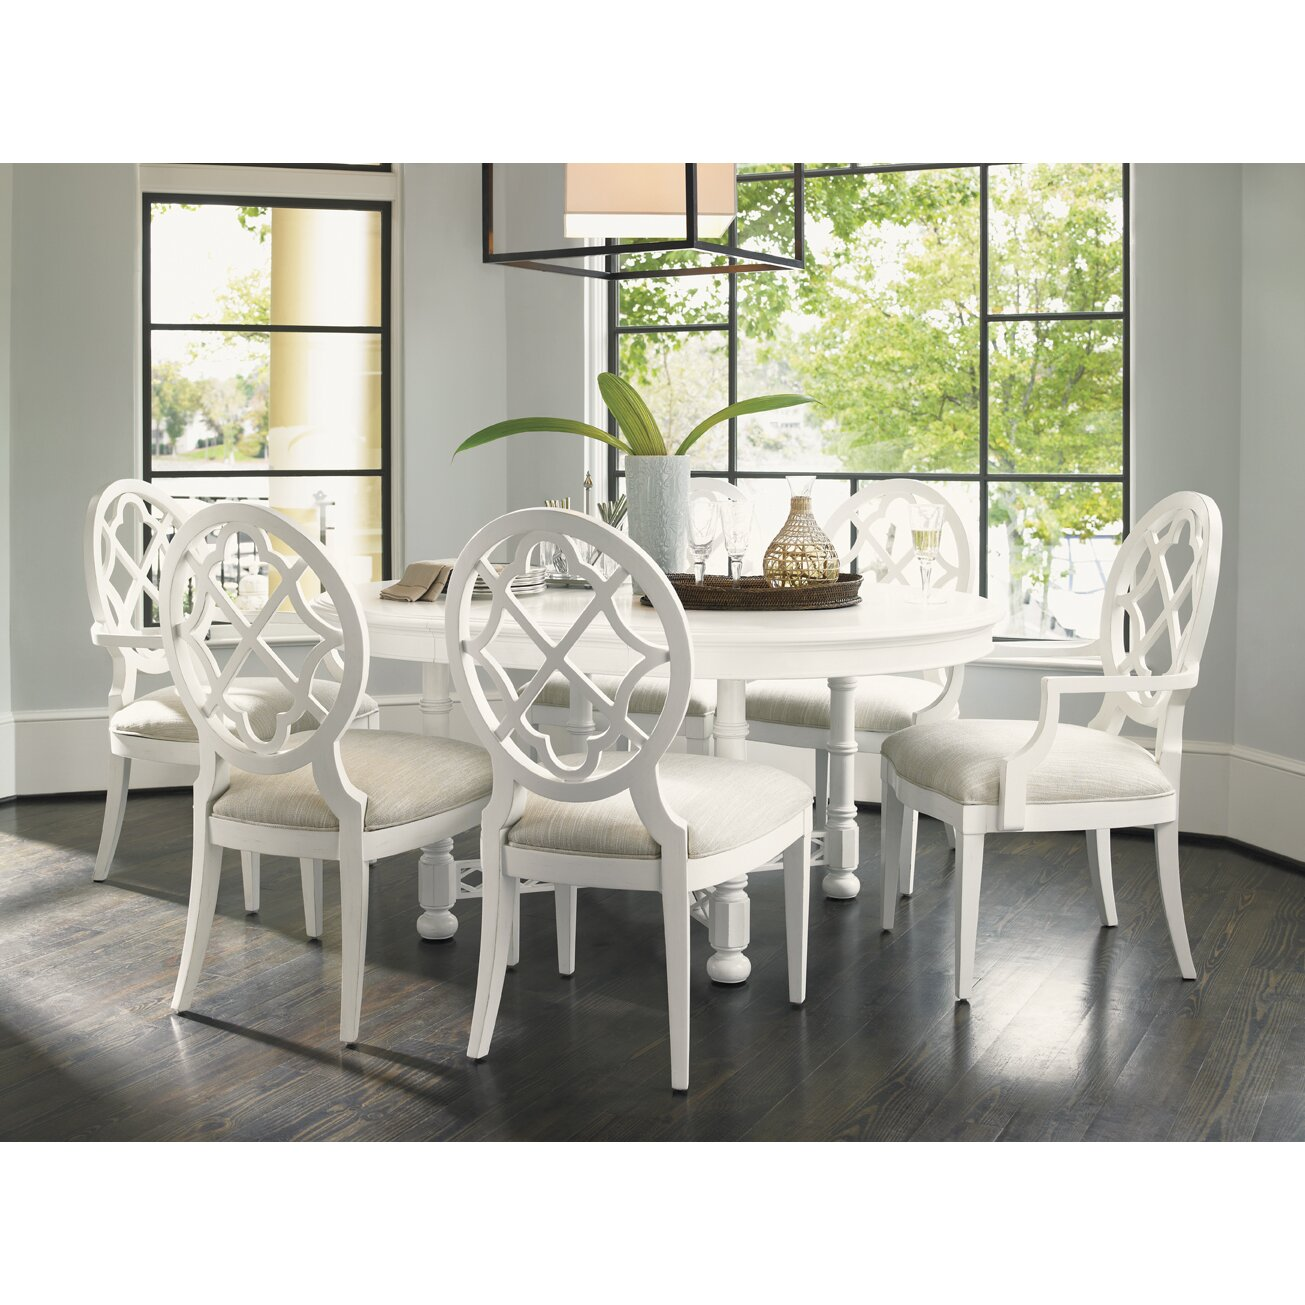 Tommy Bahama Dining Room Furniture: Tommy Bahama Home Ivory Key Dining Table